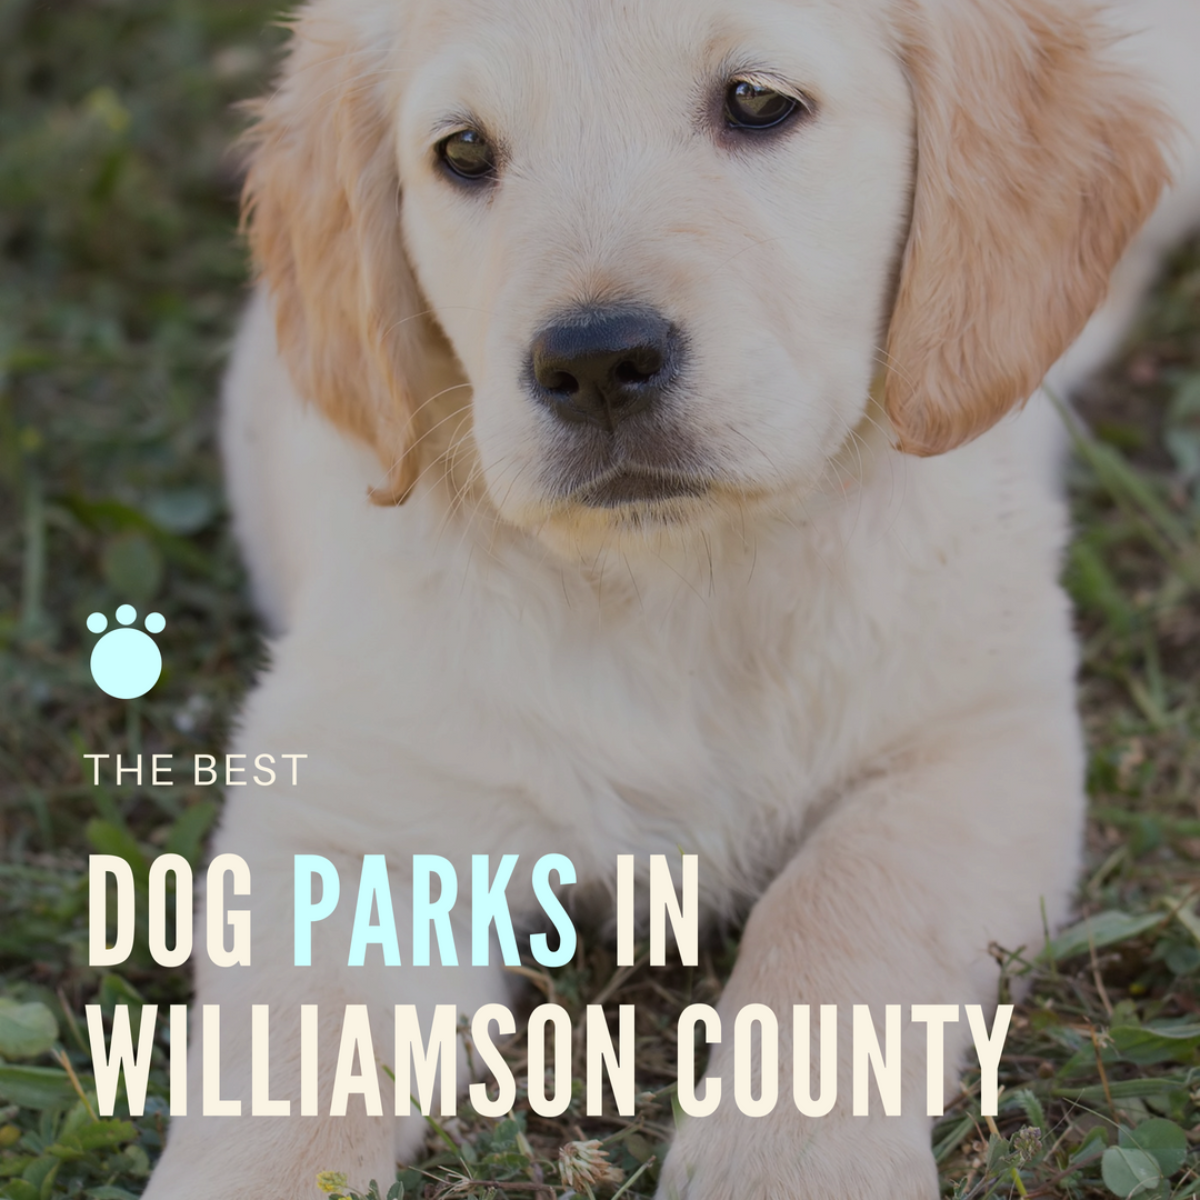 The Best Dog Parks in Williamson County